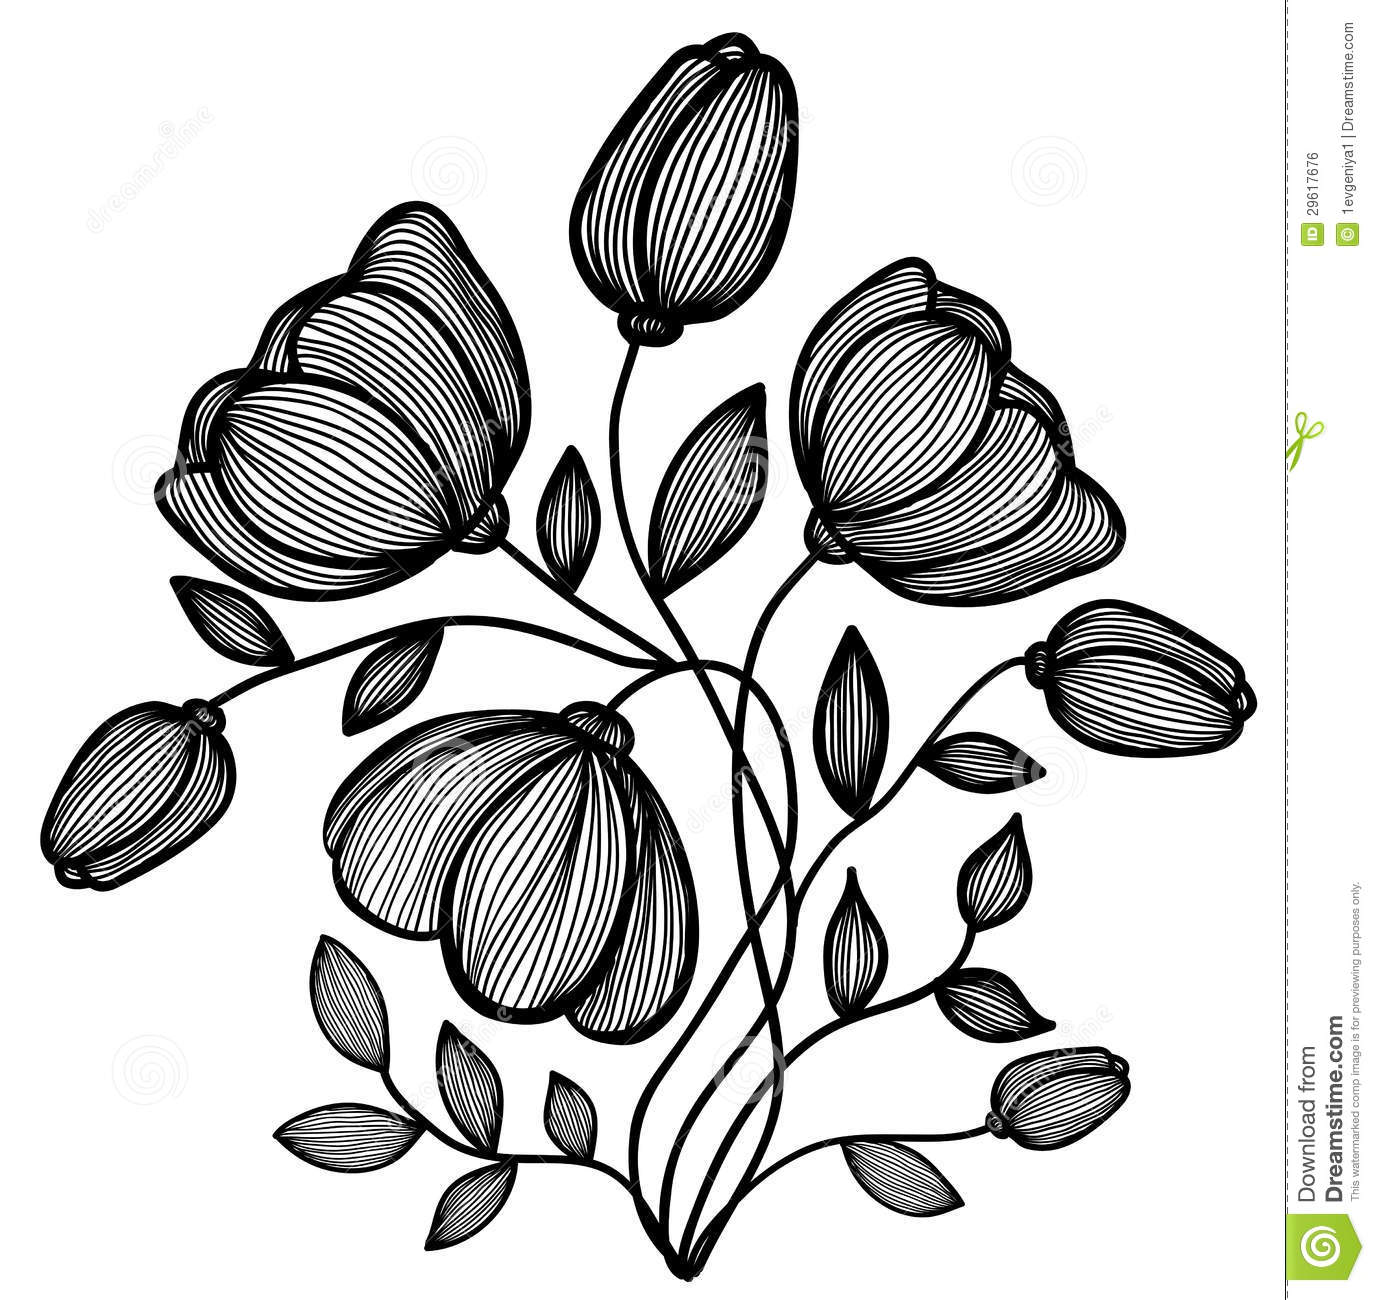 beautiful abstract black and white flower of the lines single isolated on white